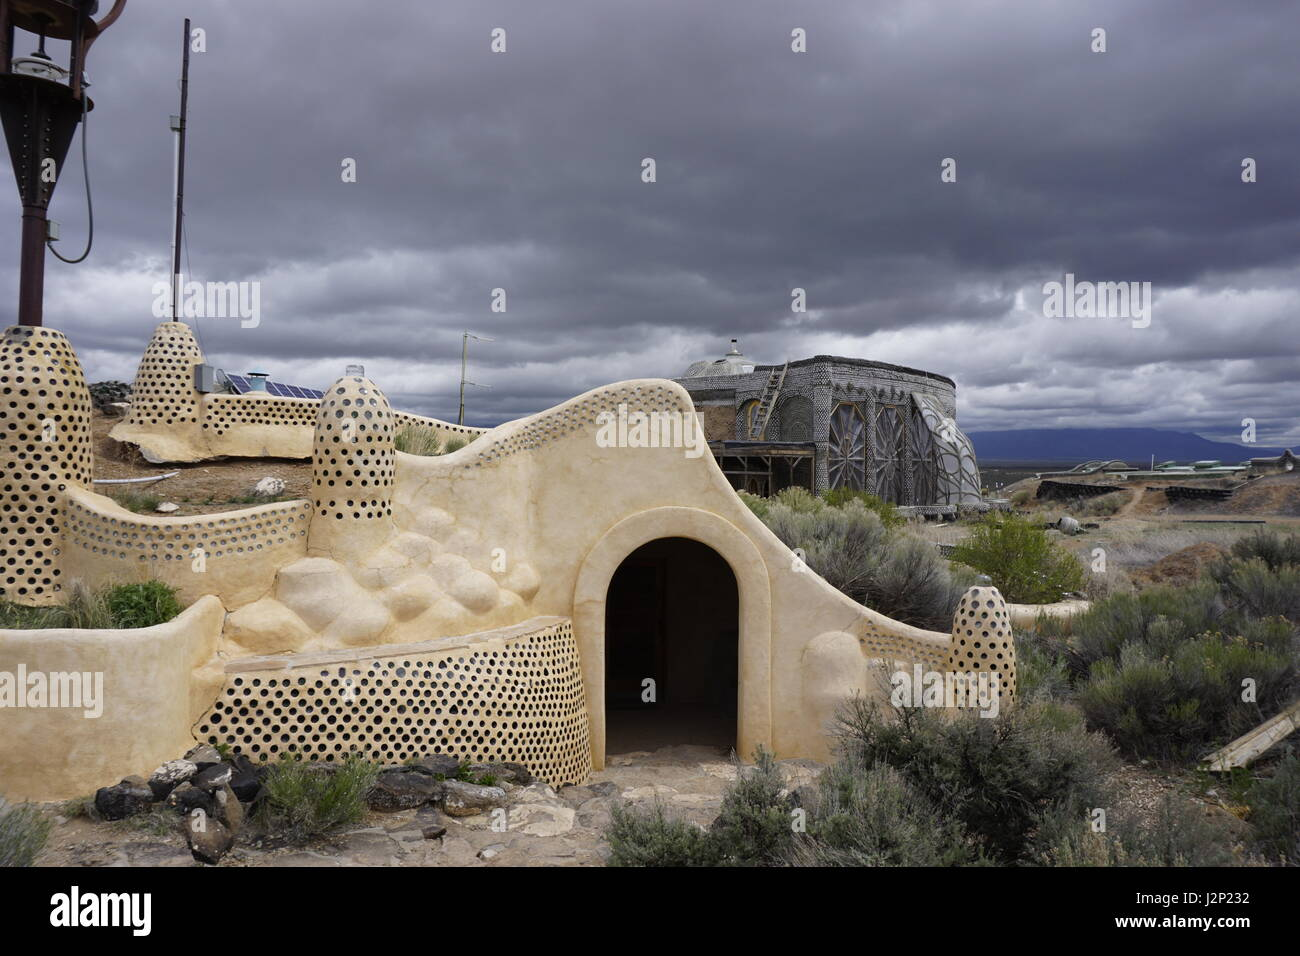 Storm clouds roll past two off-grid, sustainable earthship structures at the Earthship Biotecture visitor center - Stock Image